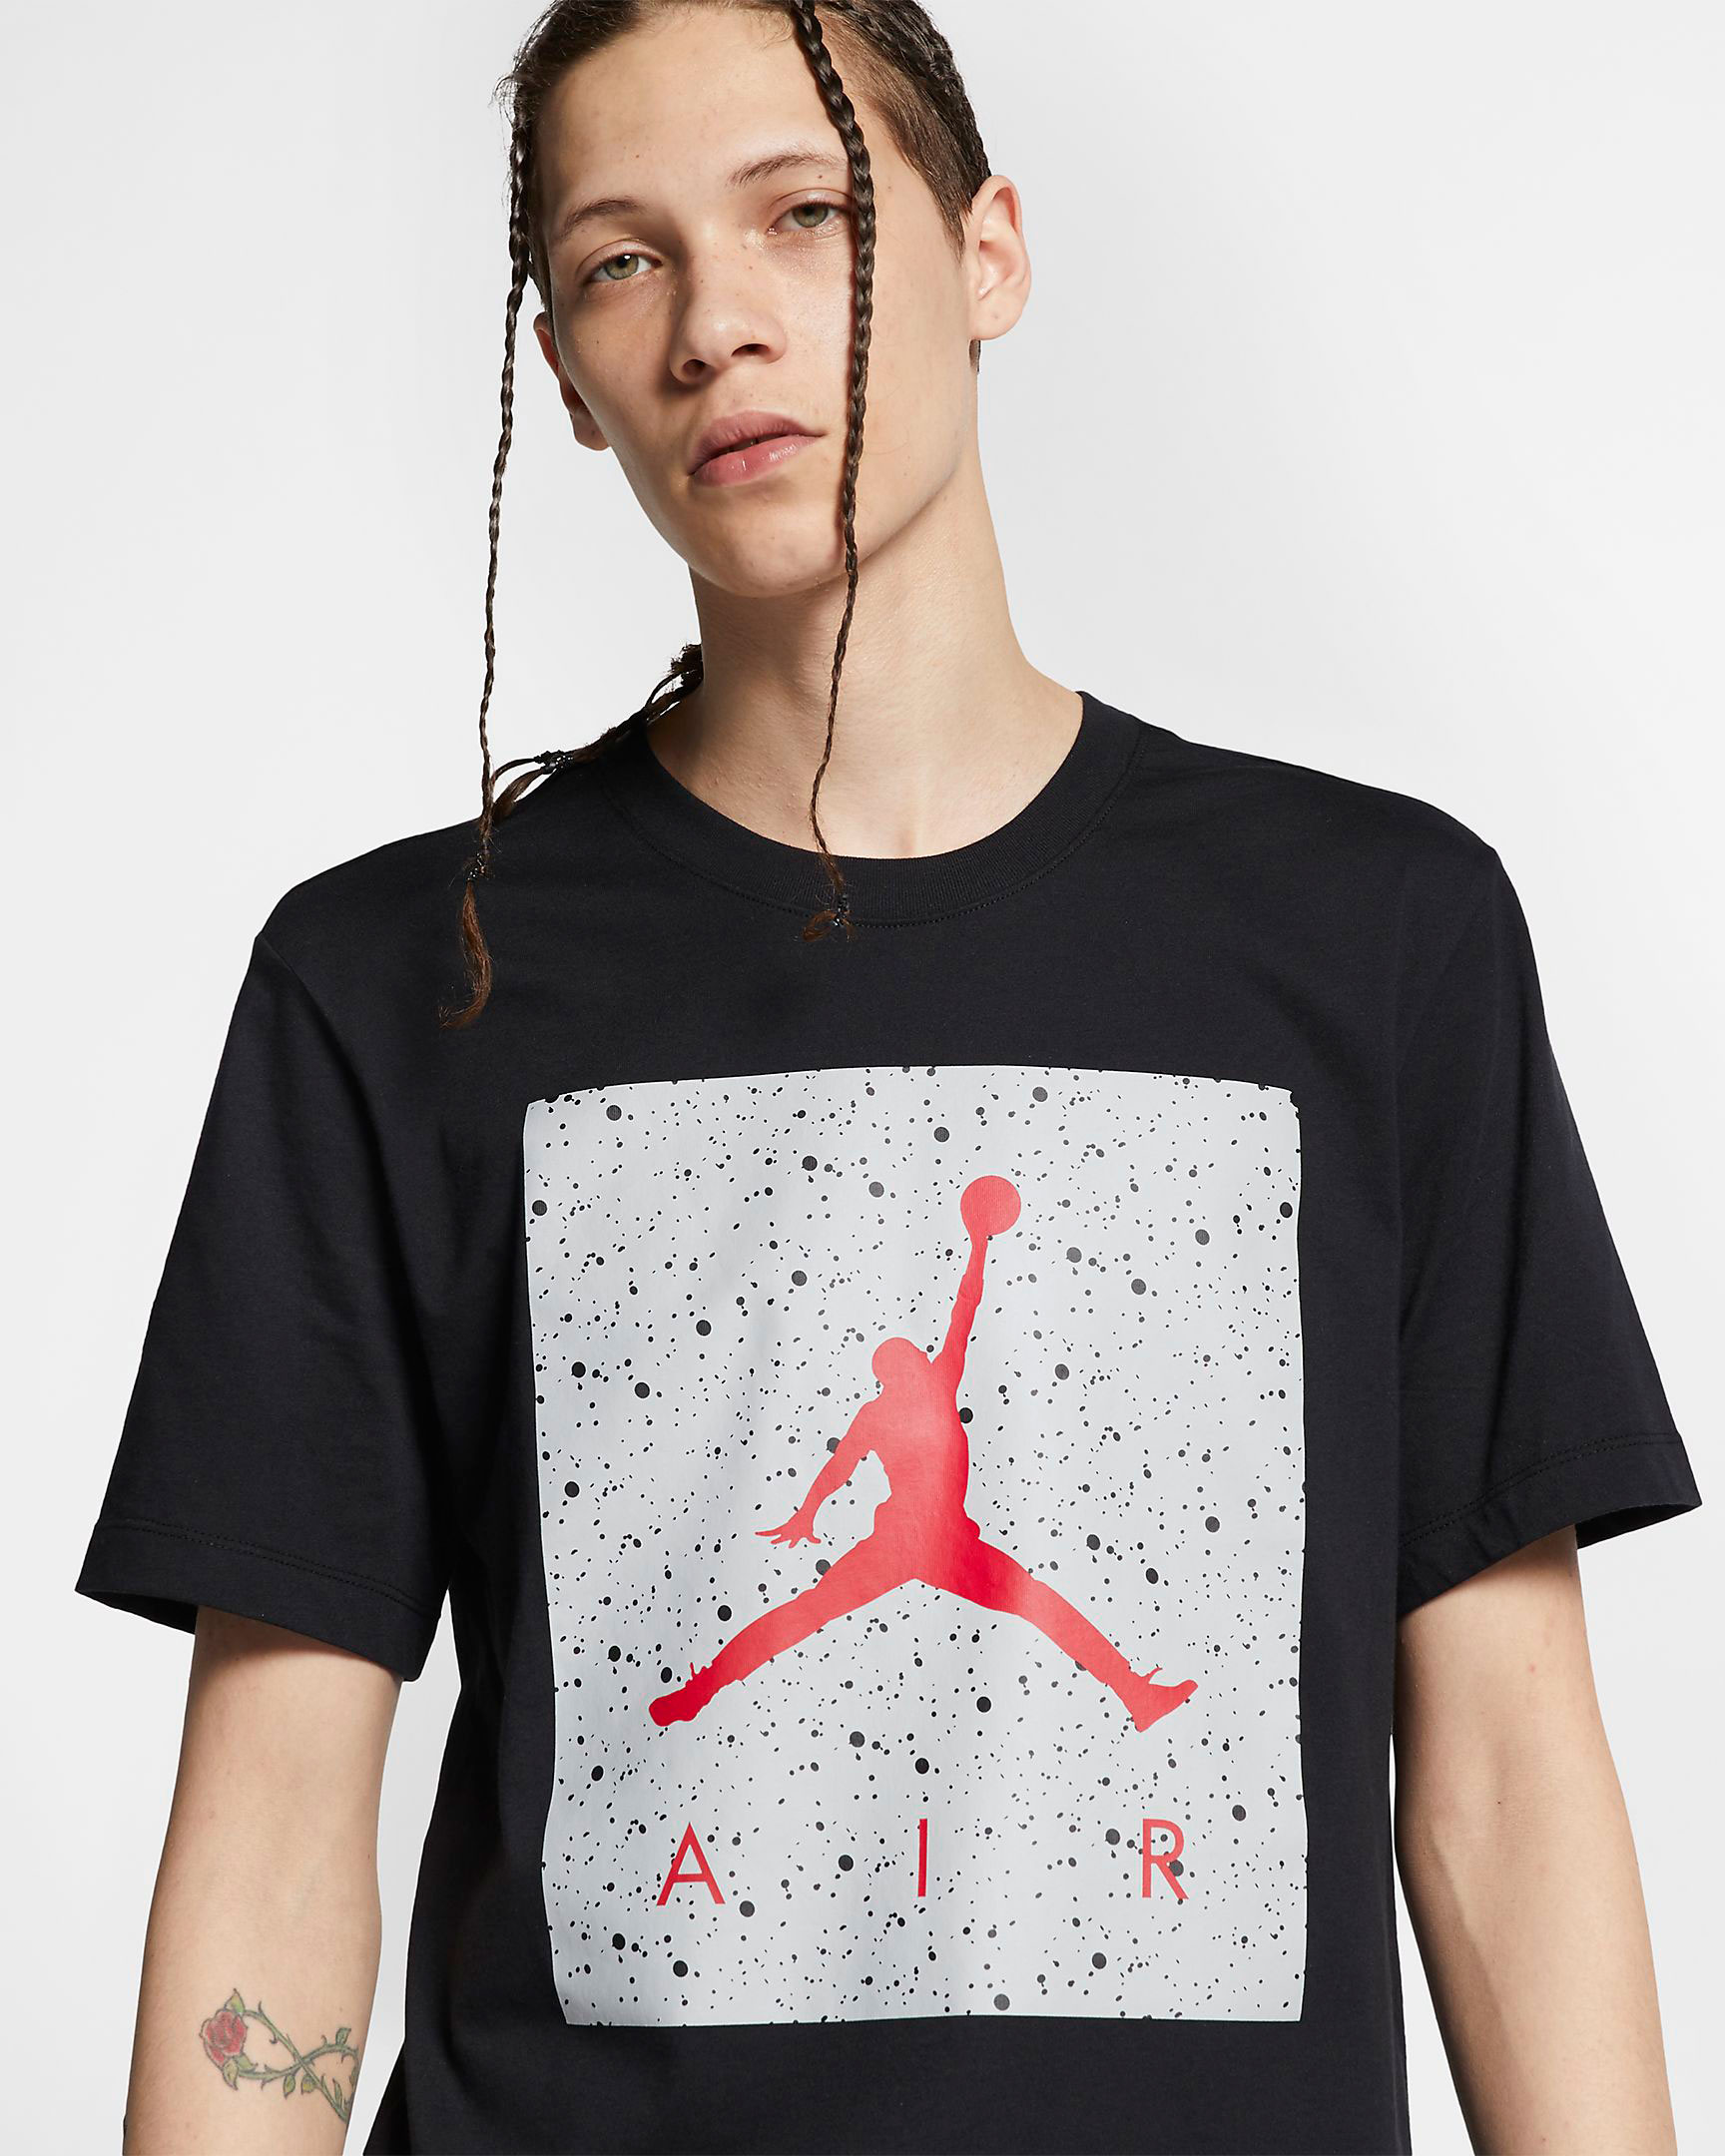 air-jordan-4-og-bred-cement-shirt-match-1